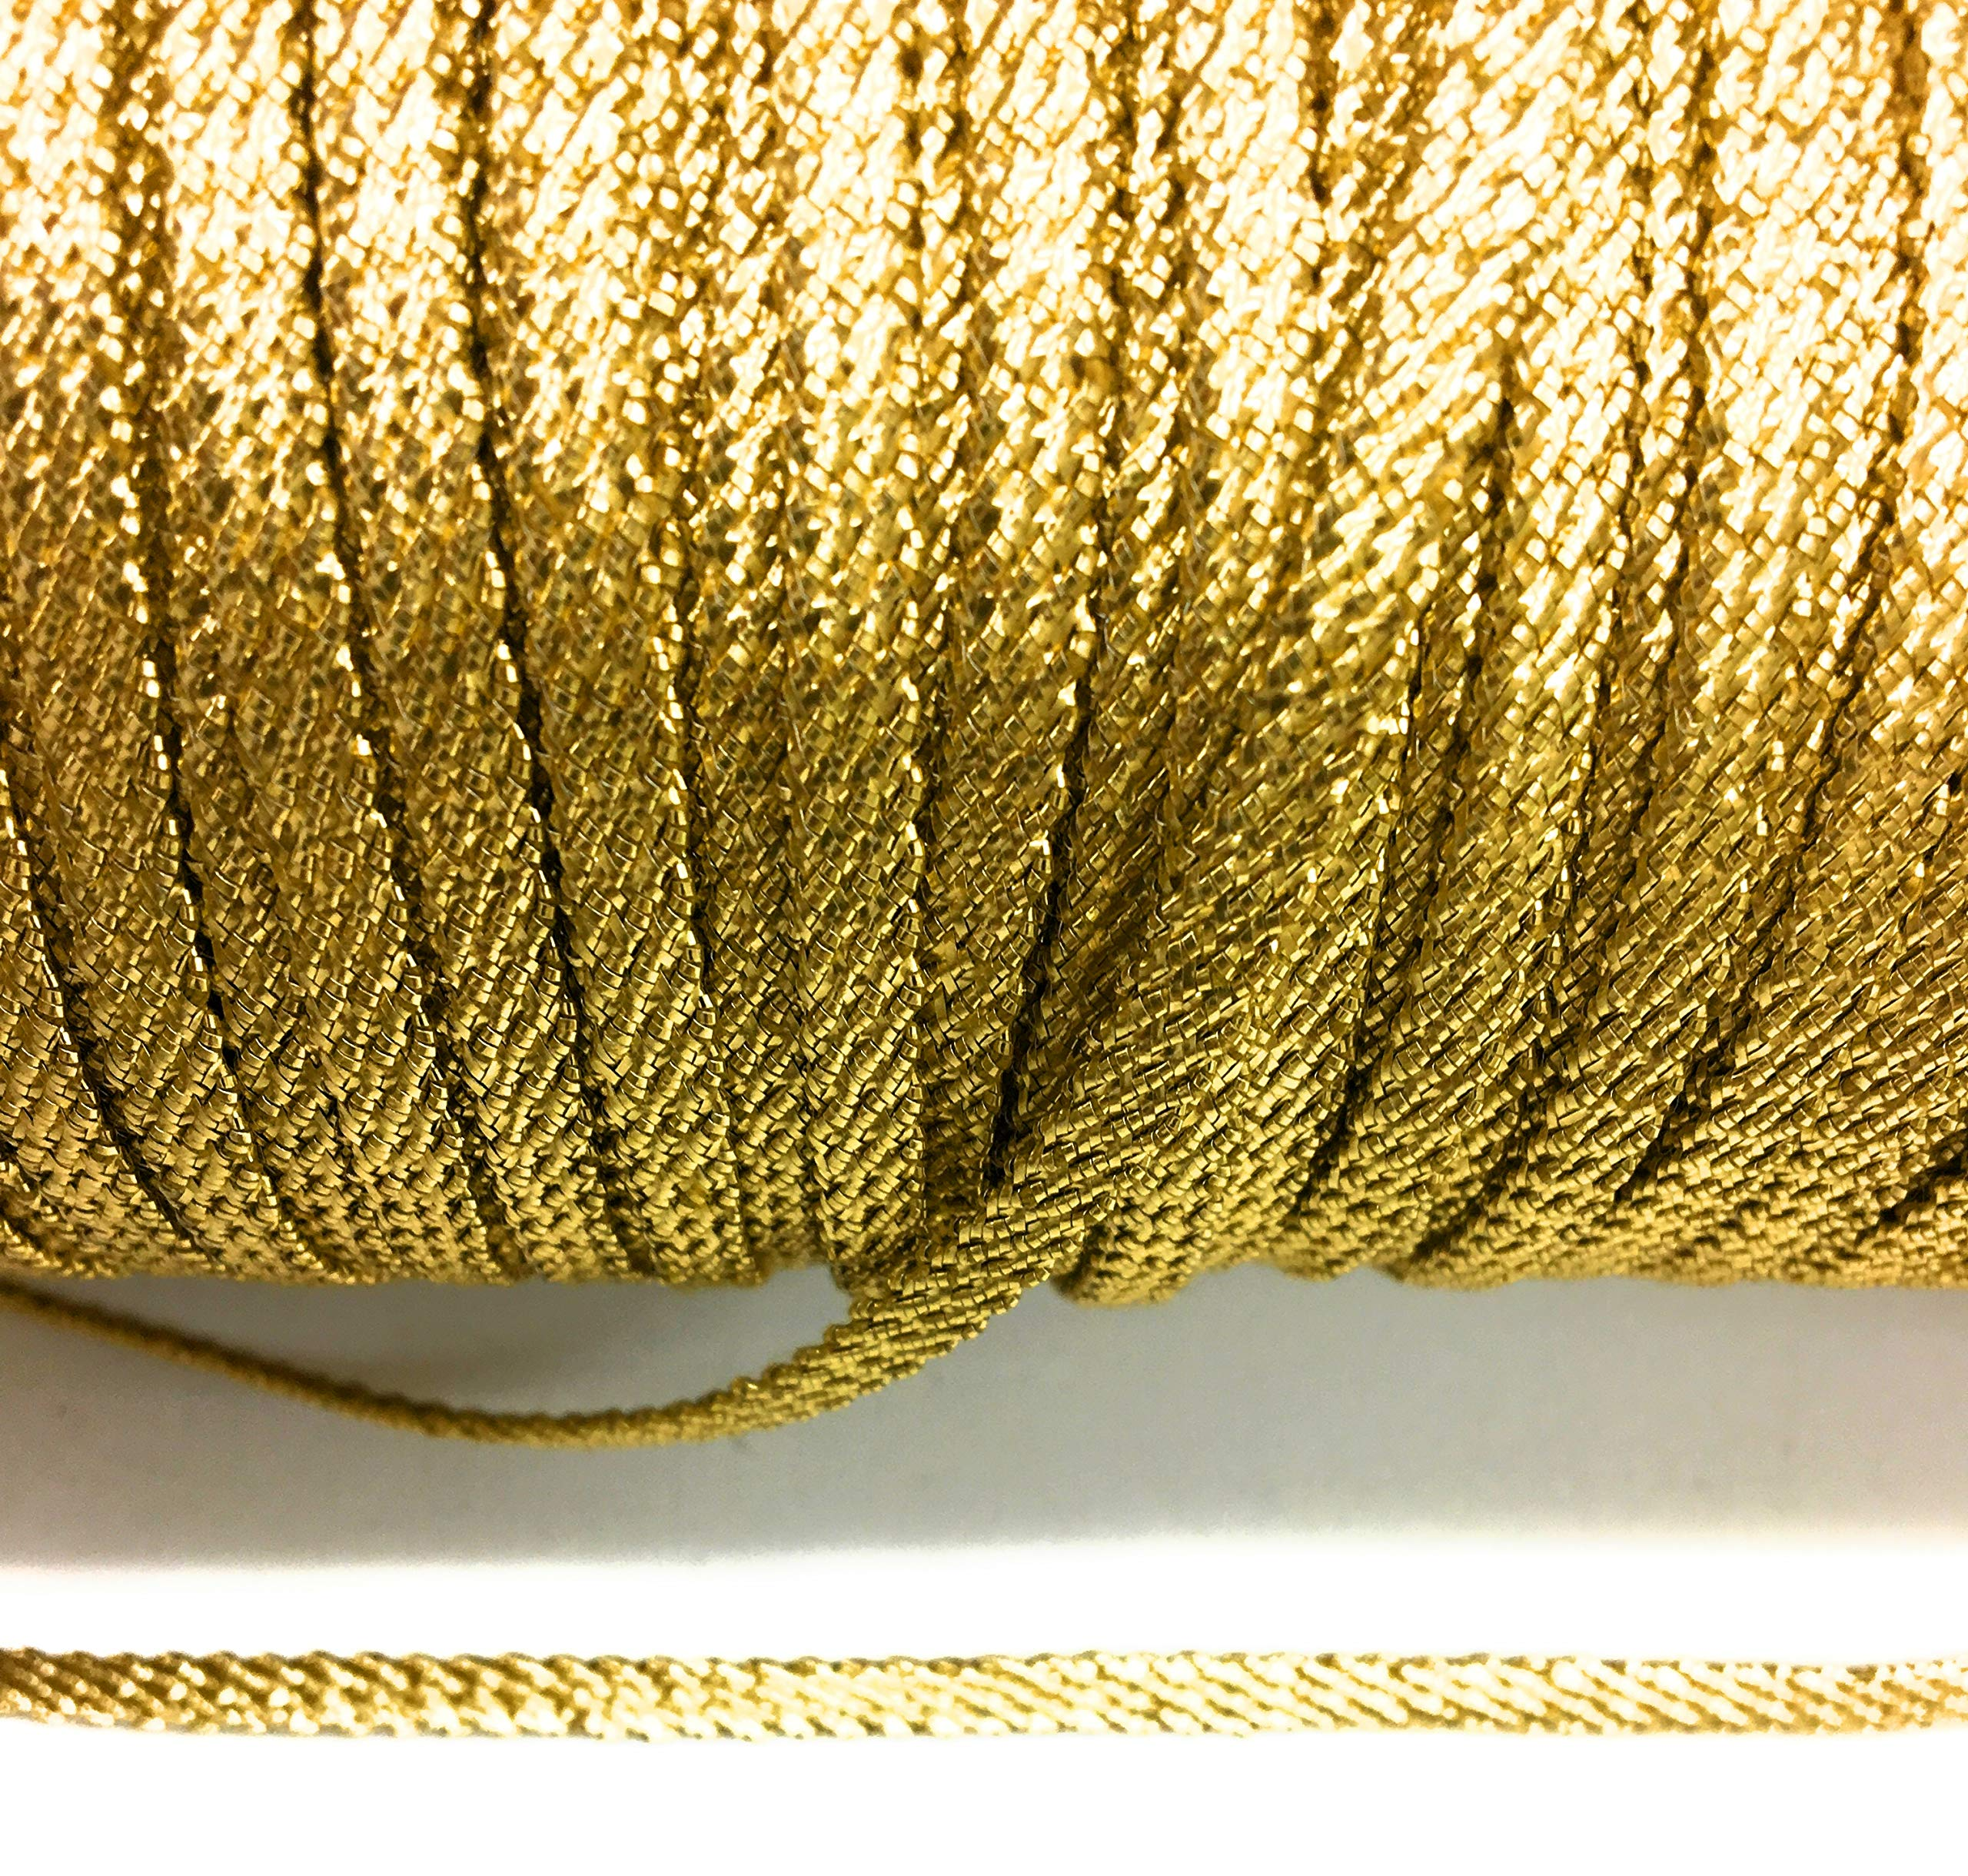 Thick Gold Metallic Flat Twisted Braid 1/4'' (7mm) Wide -2 mm Thick x 144 Yards by Katz Trimming / Trims Unlimited